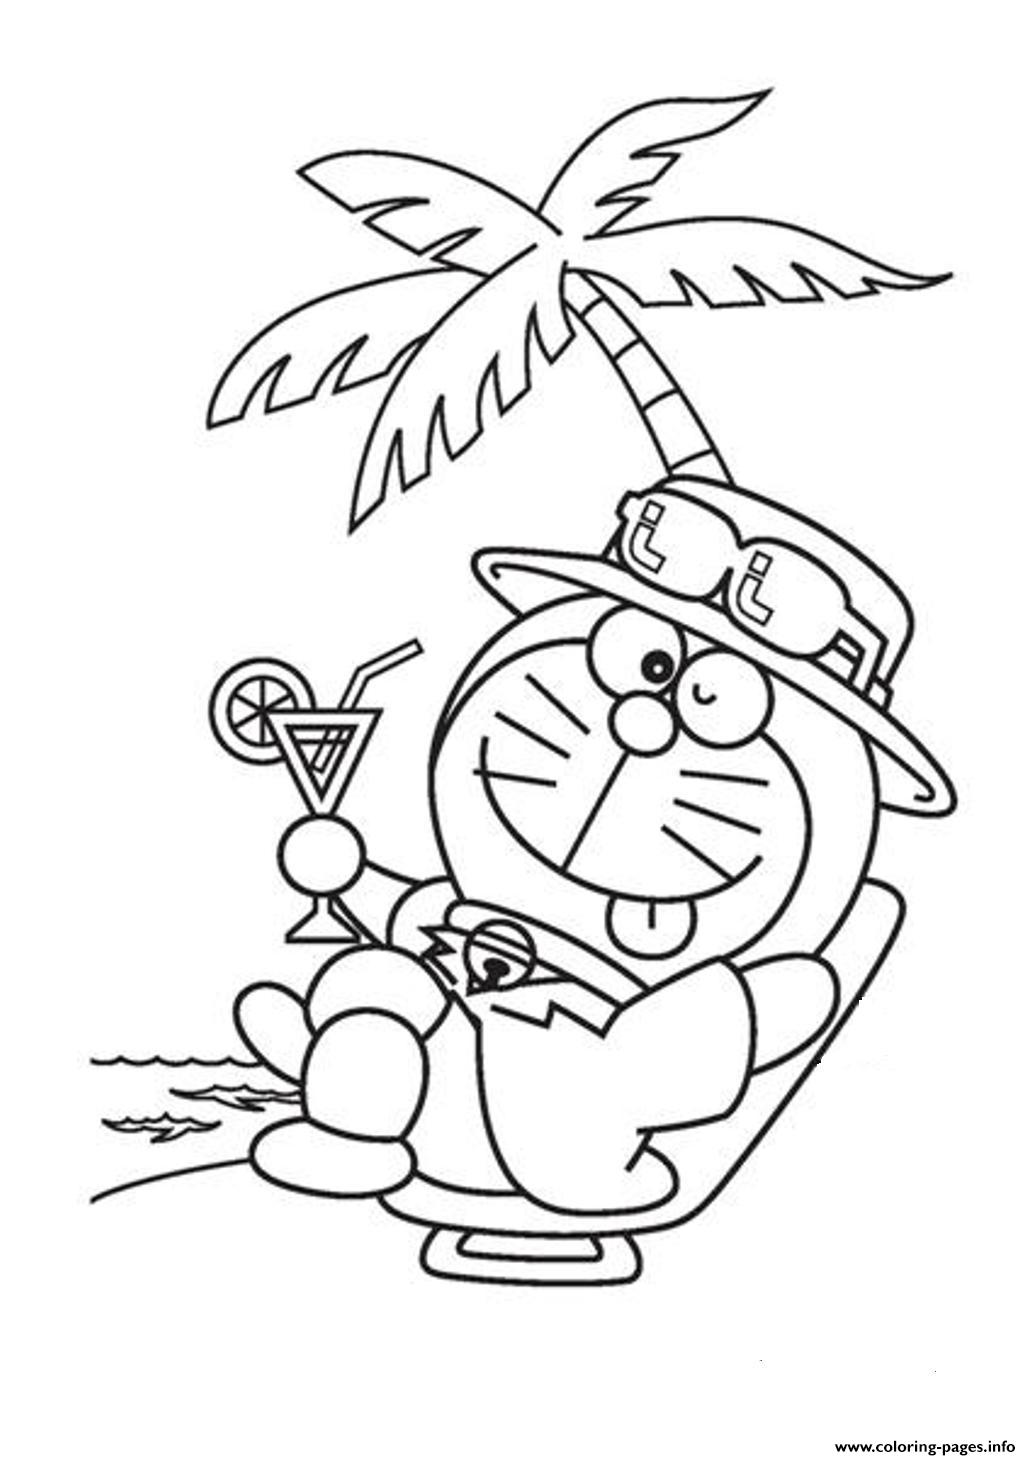 Relaxing Doraemon Cartoon Sf012 Coloring Pages